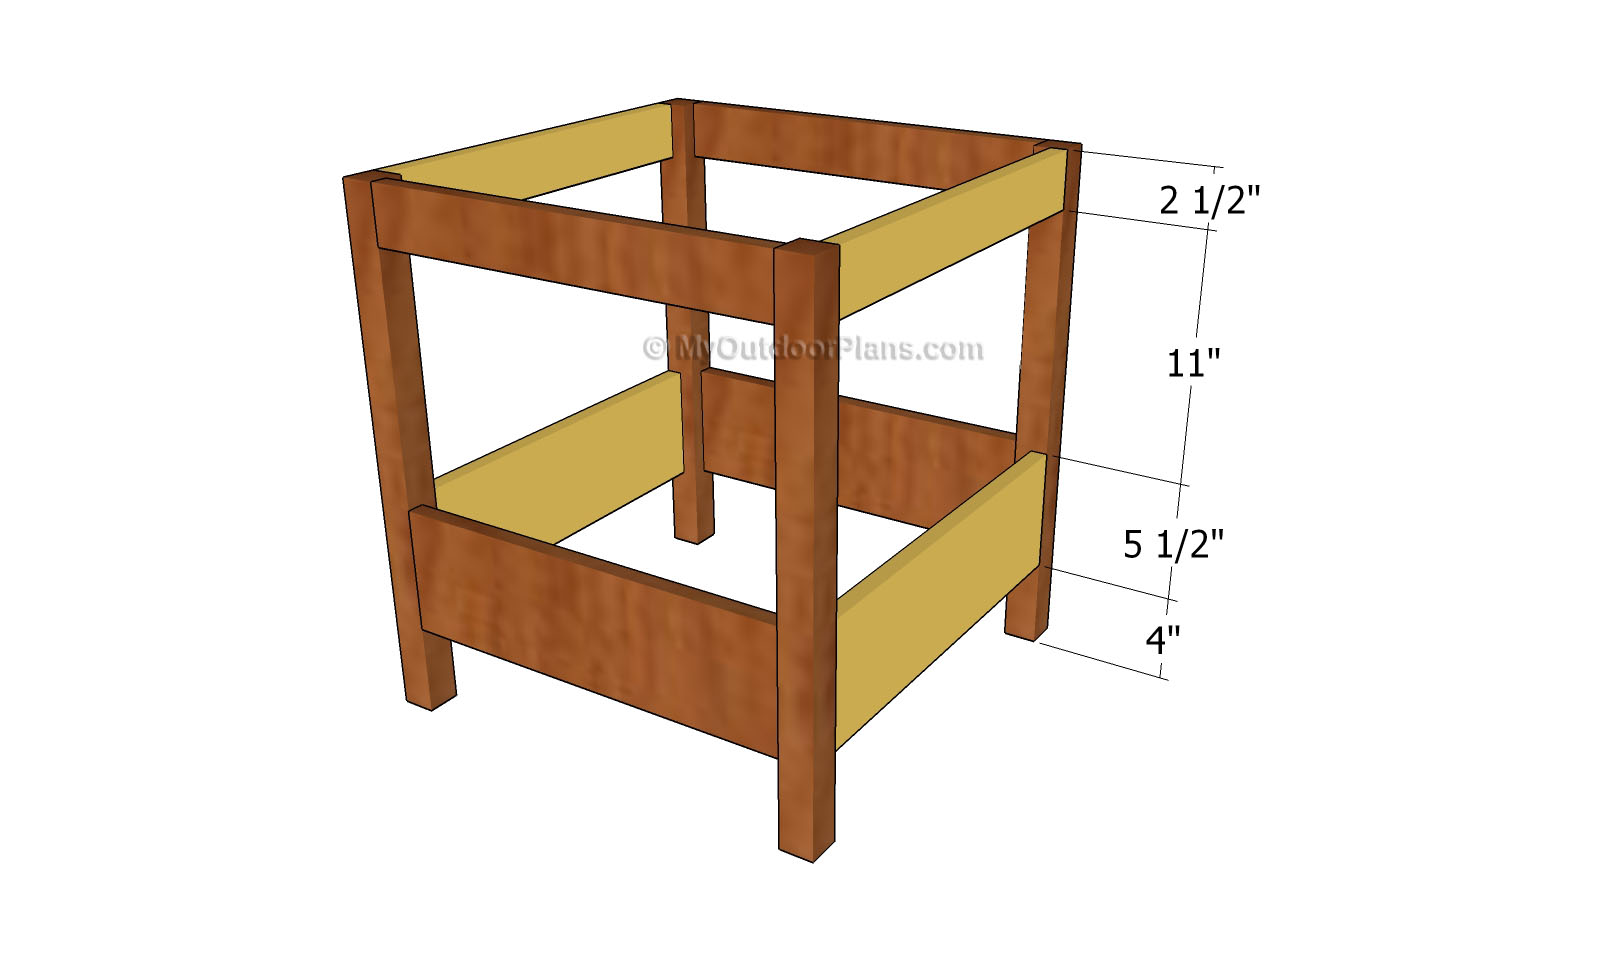 Play table plans free outdoor plans diy shed wooden for Diy play table plans